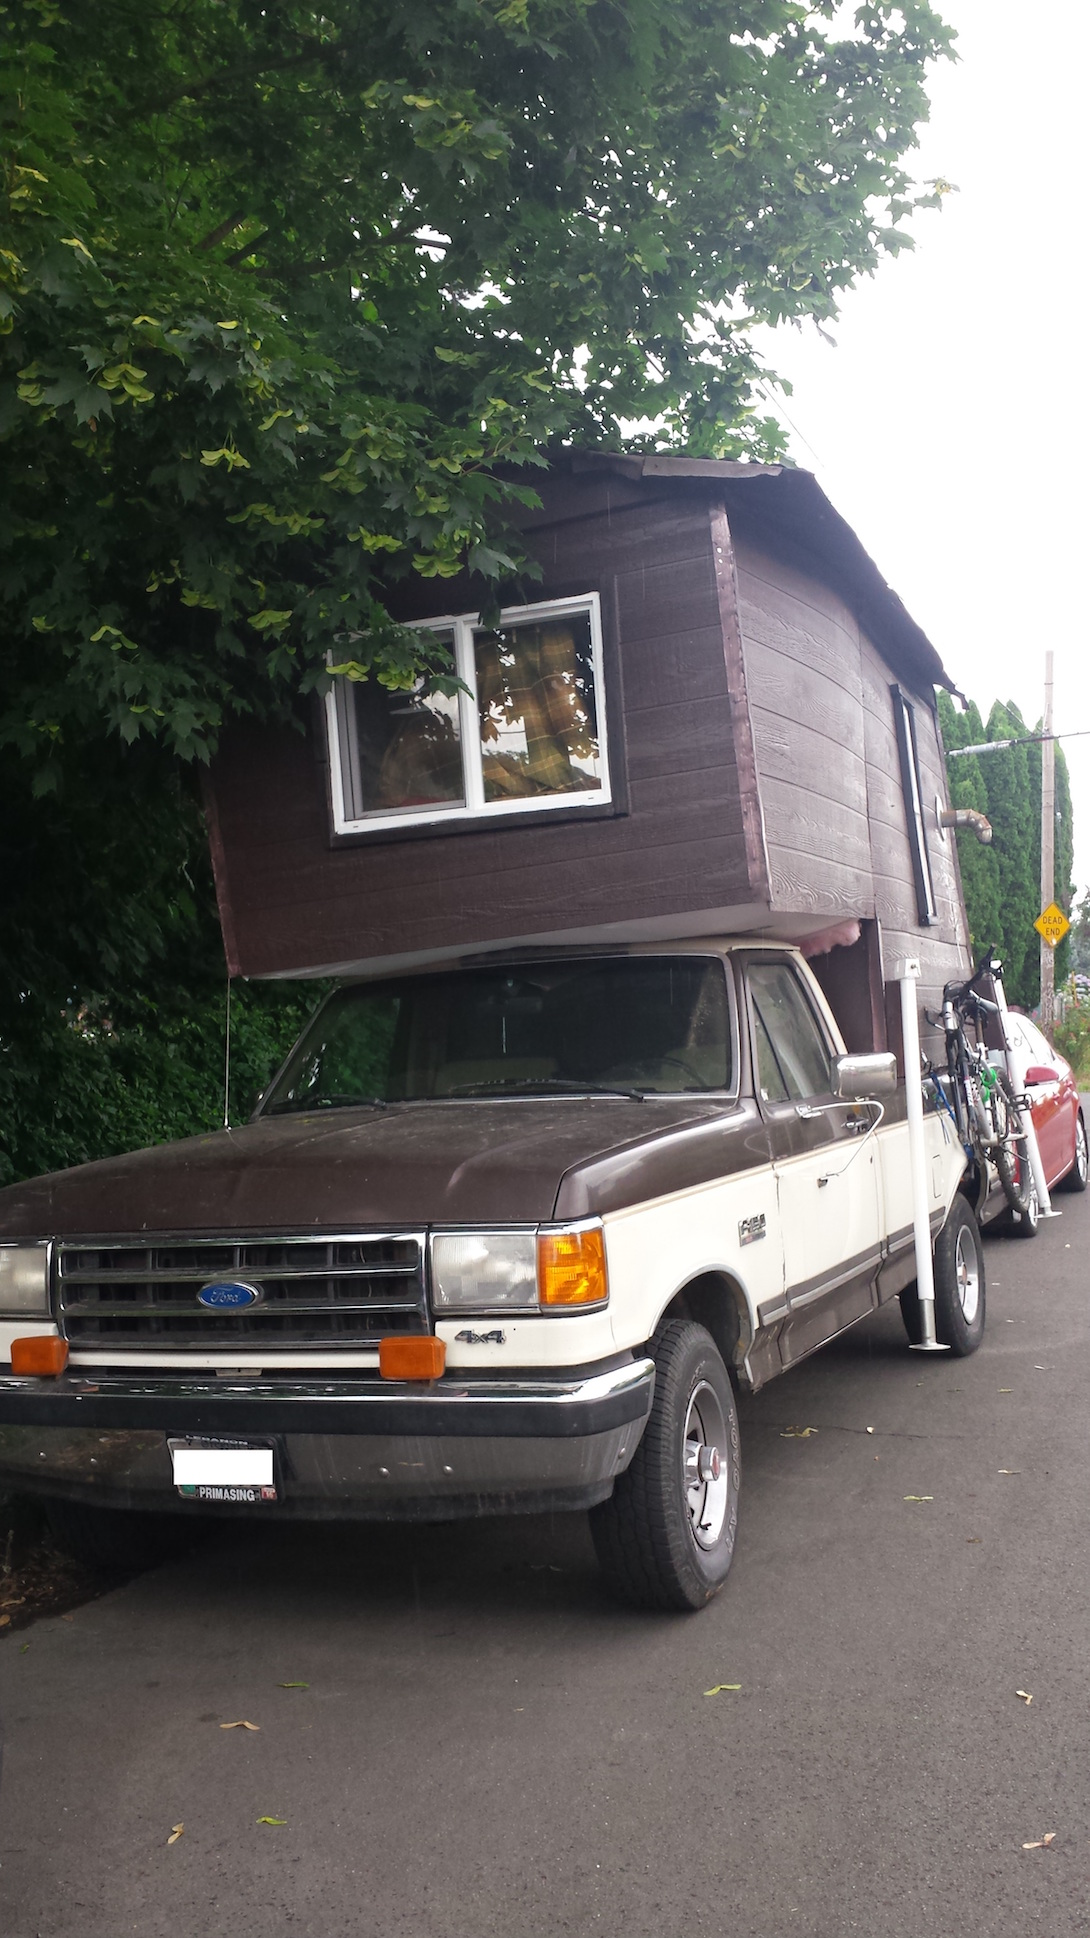 Not stealth mobile cabin